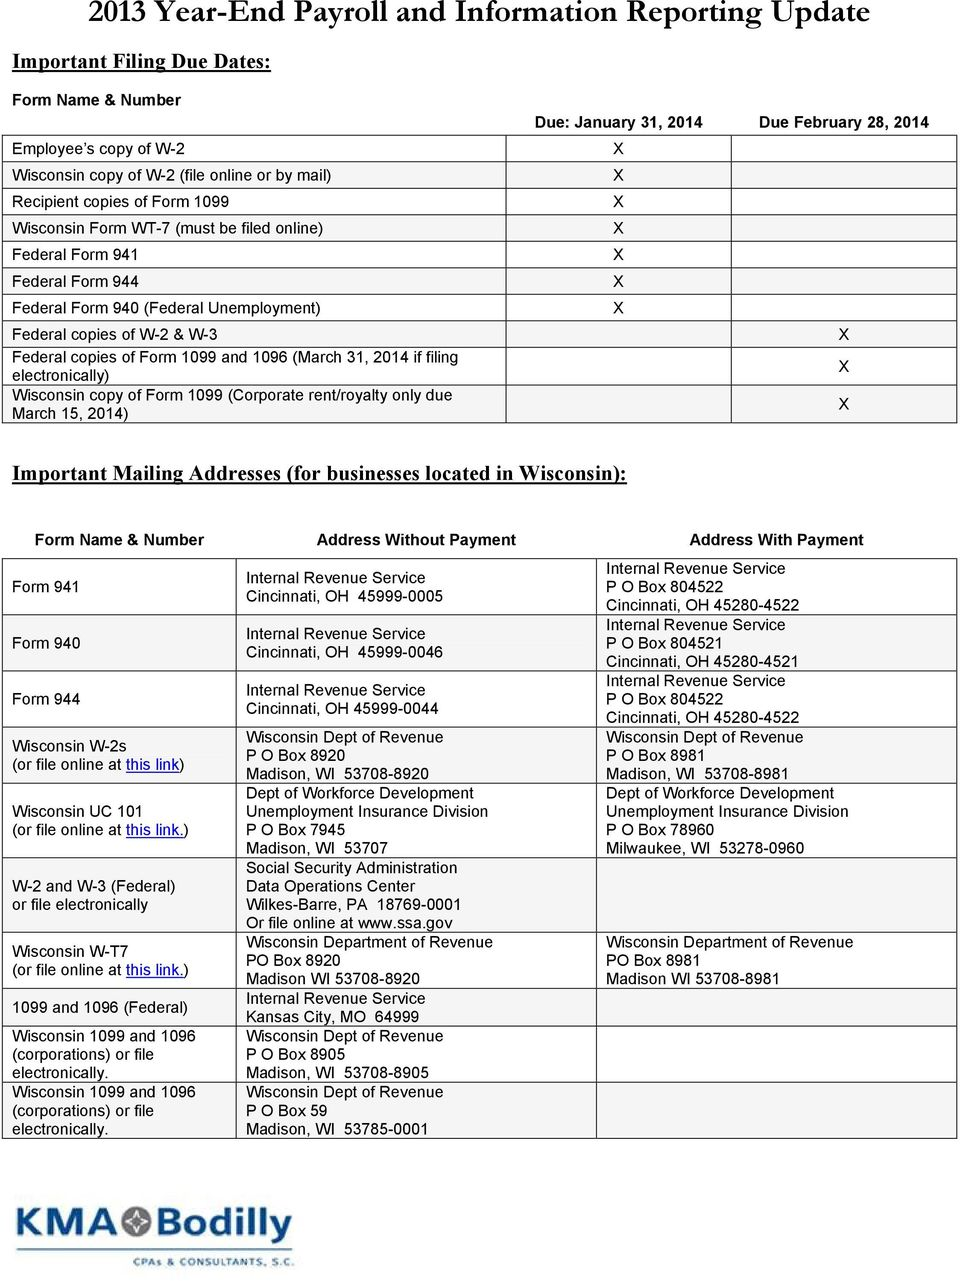 Where To Mail Wisconsin W2 Forms